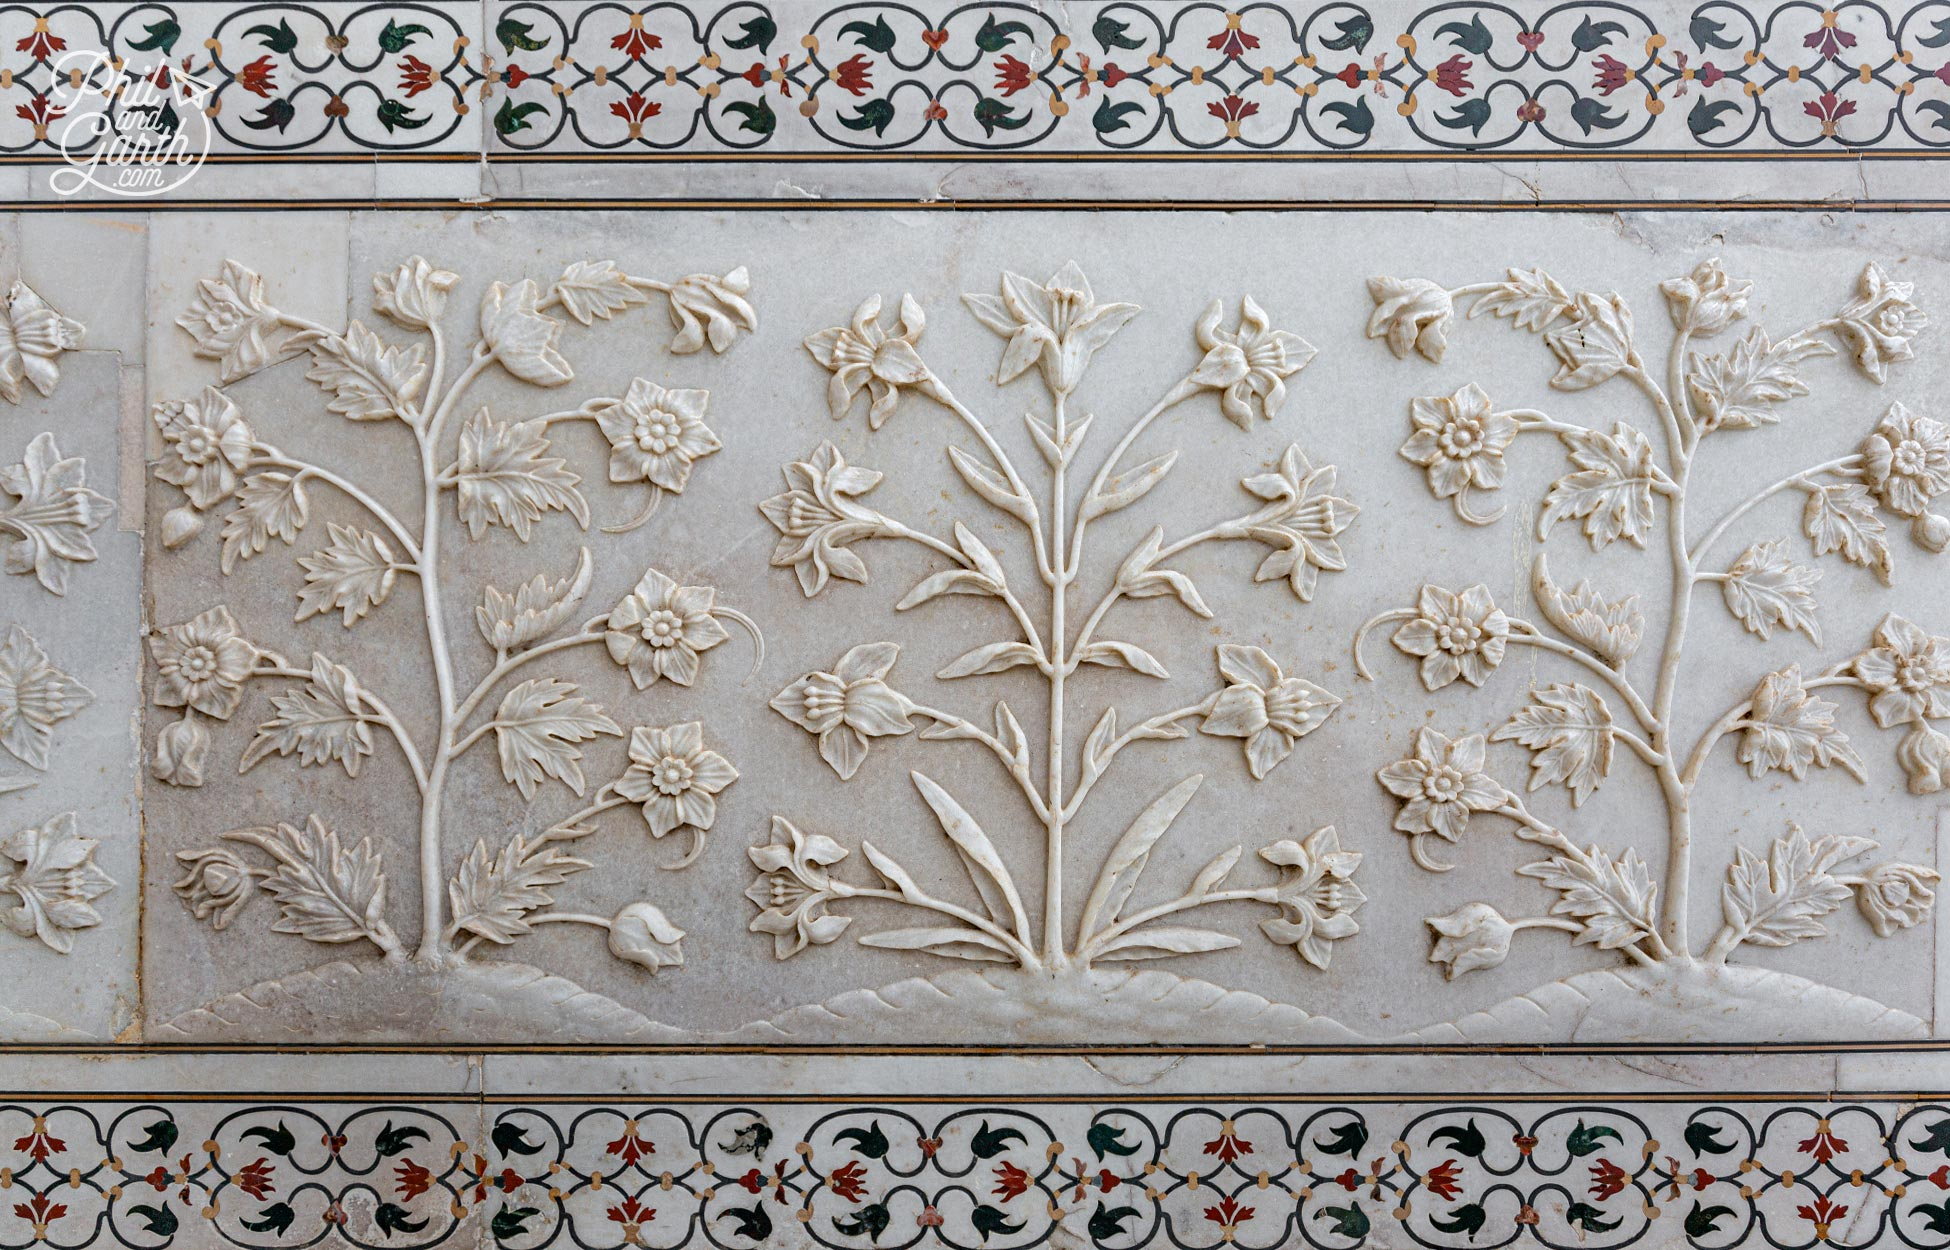 Marble bas-relief detail of flowers